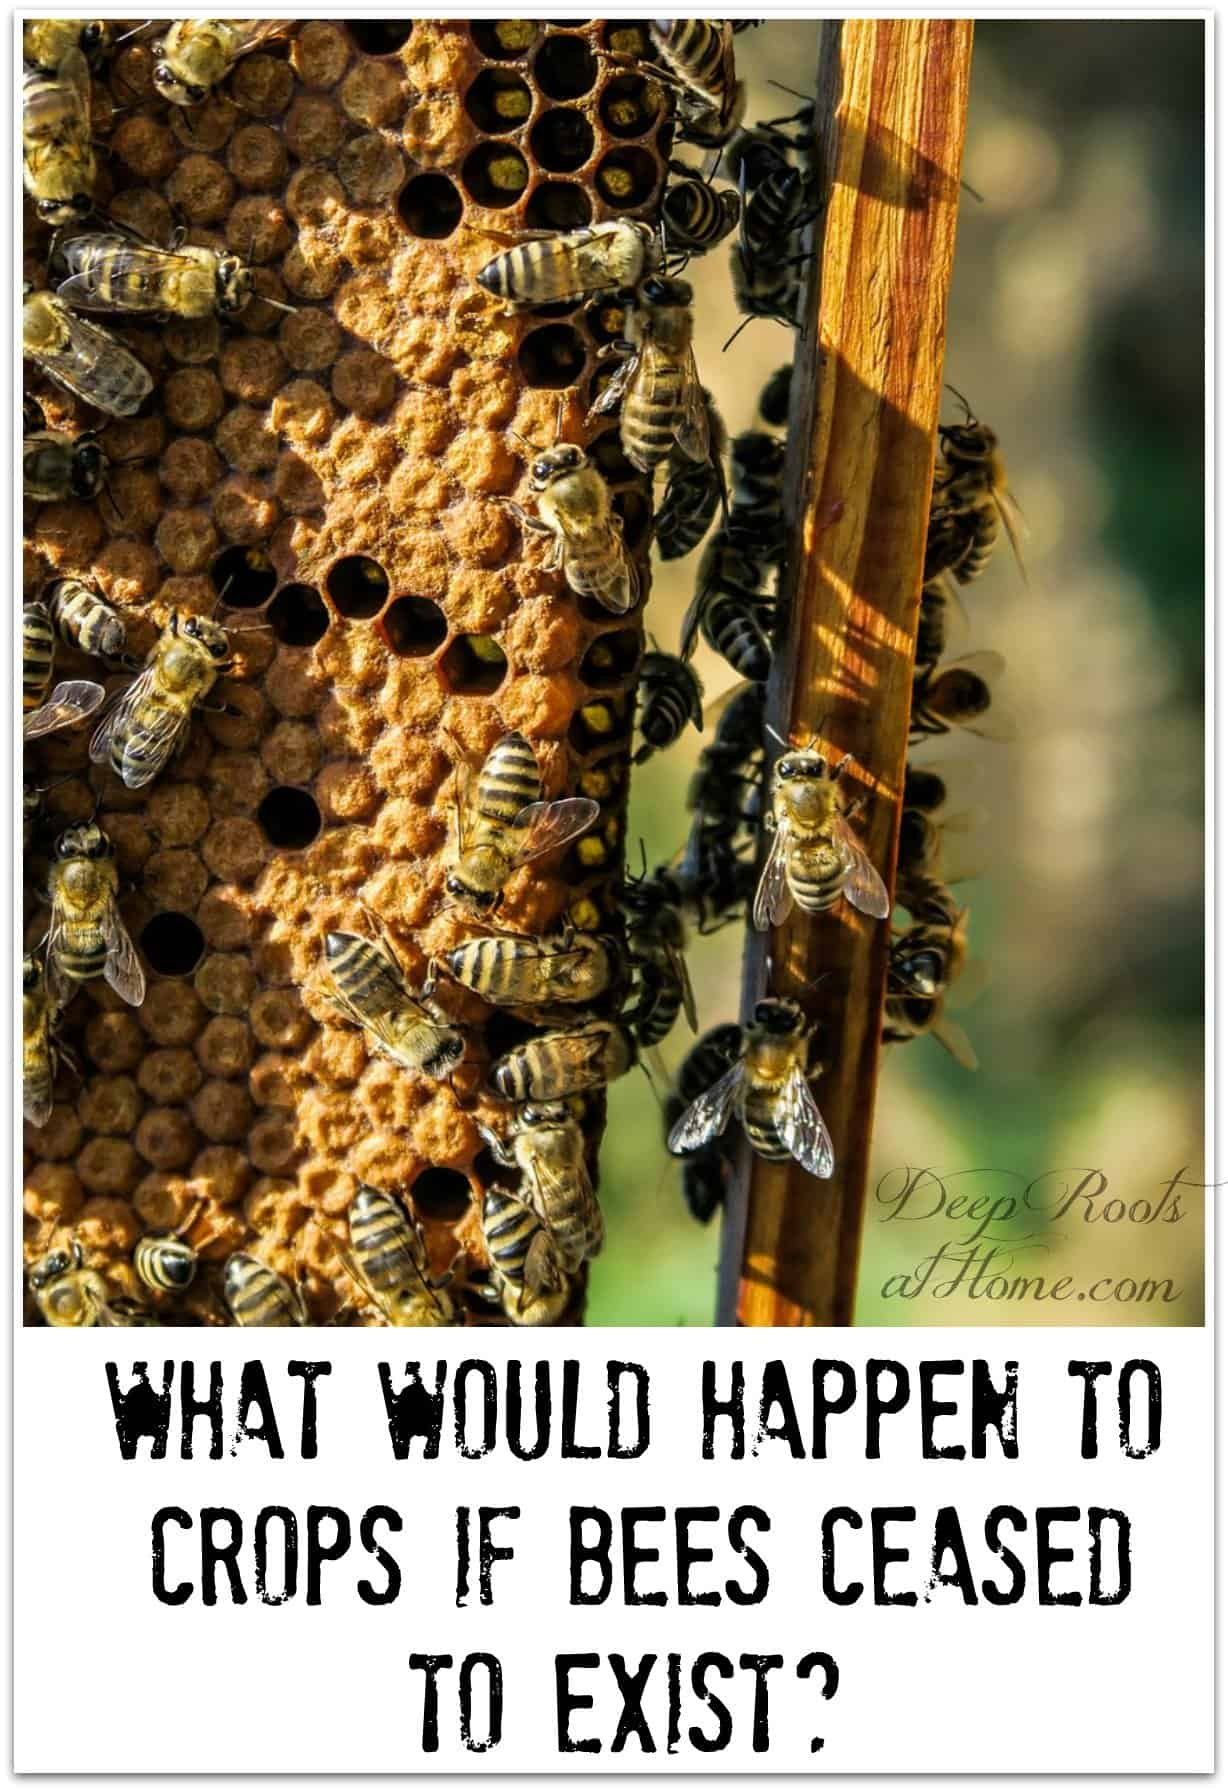 What Would Happen To Crops If Bees Ceased To Exist? Save the Bee image